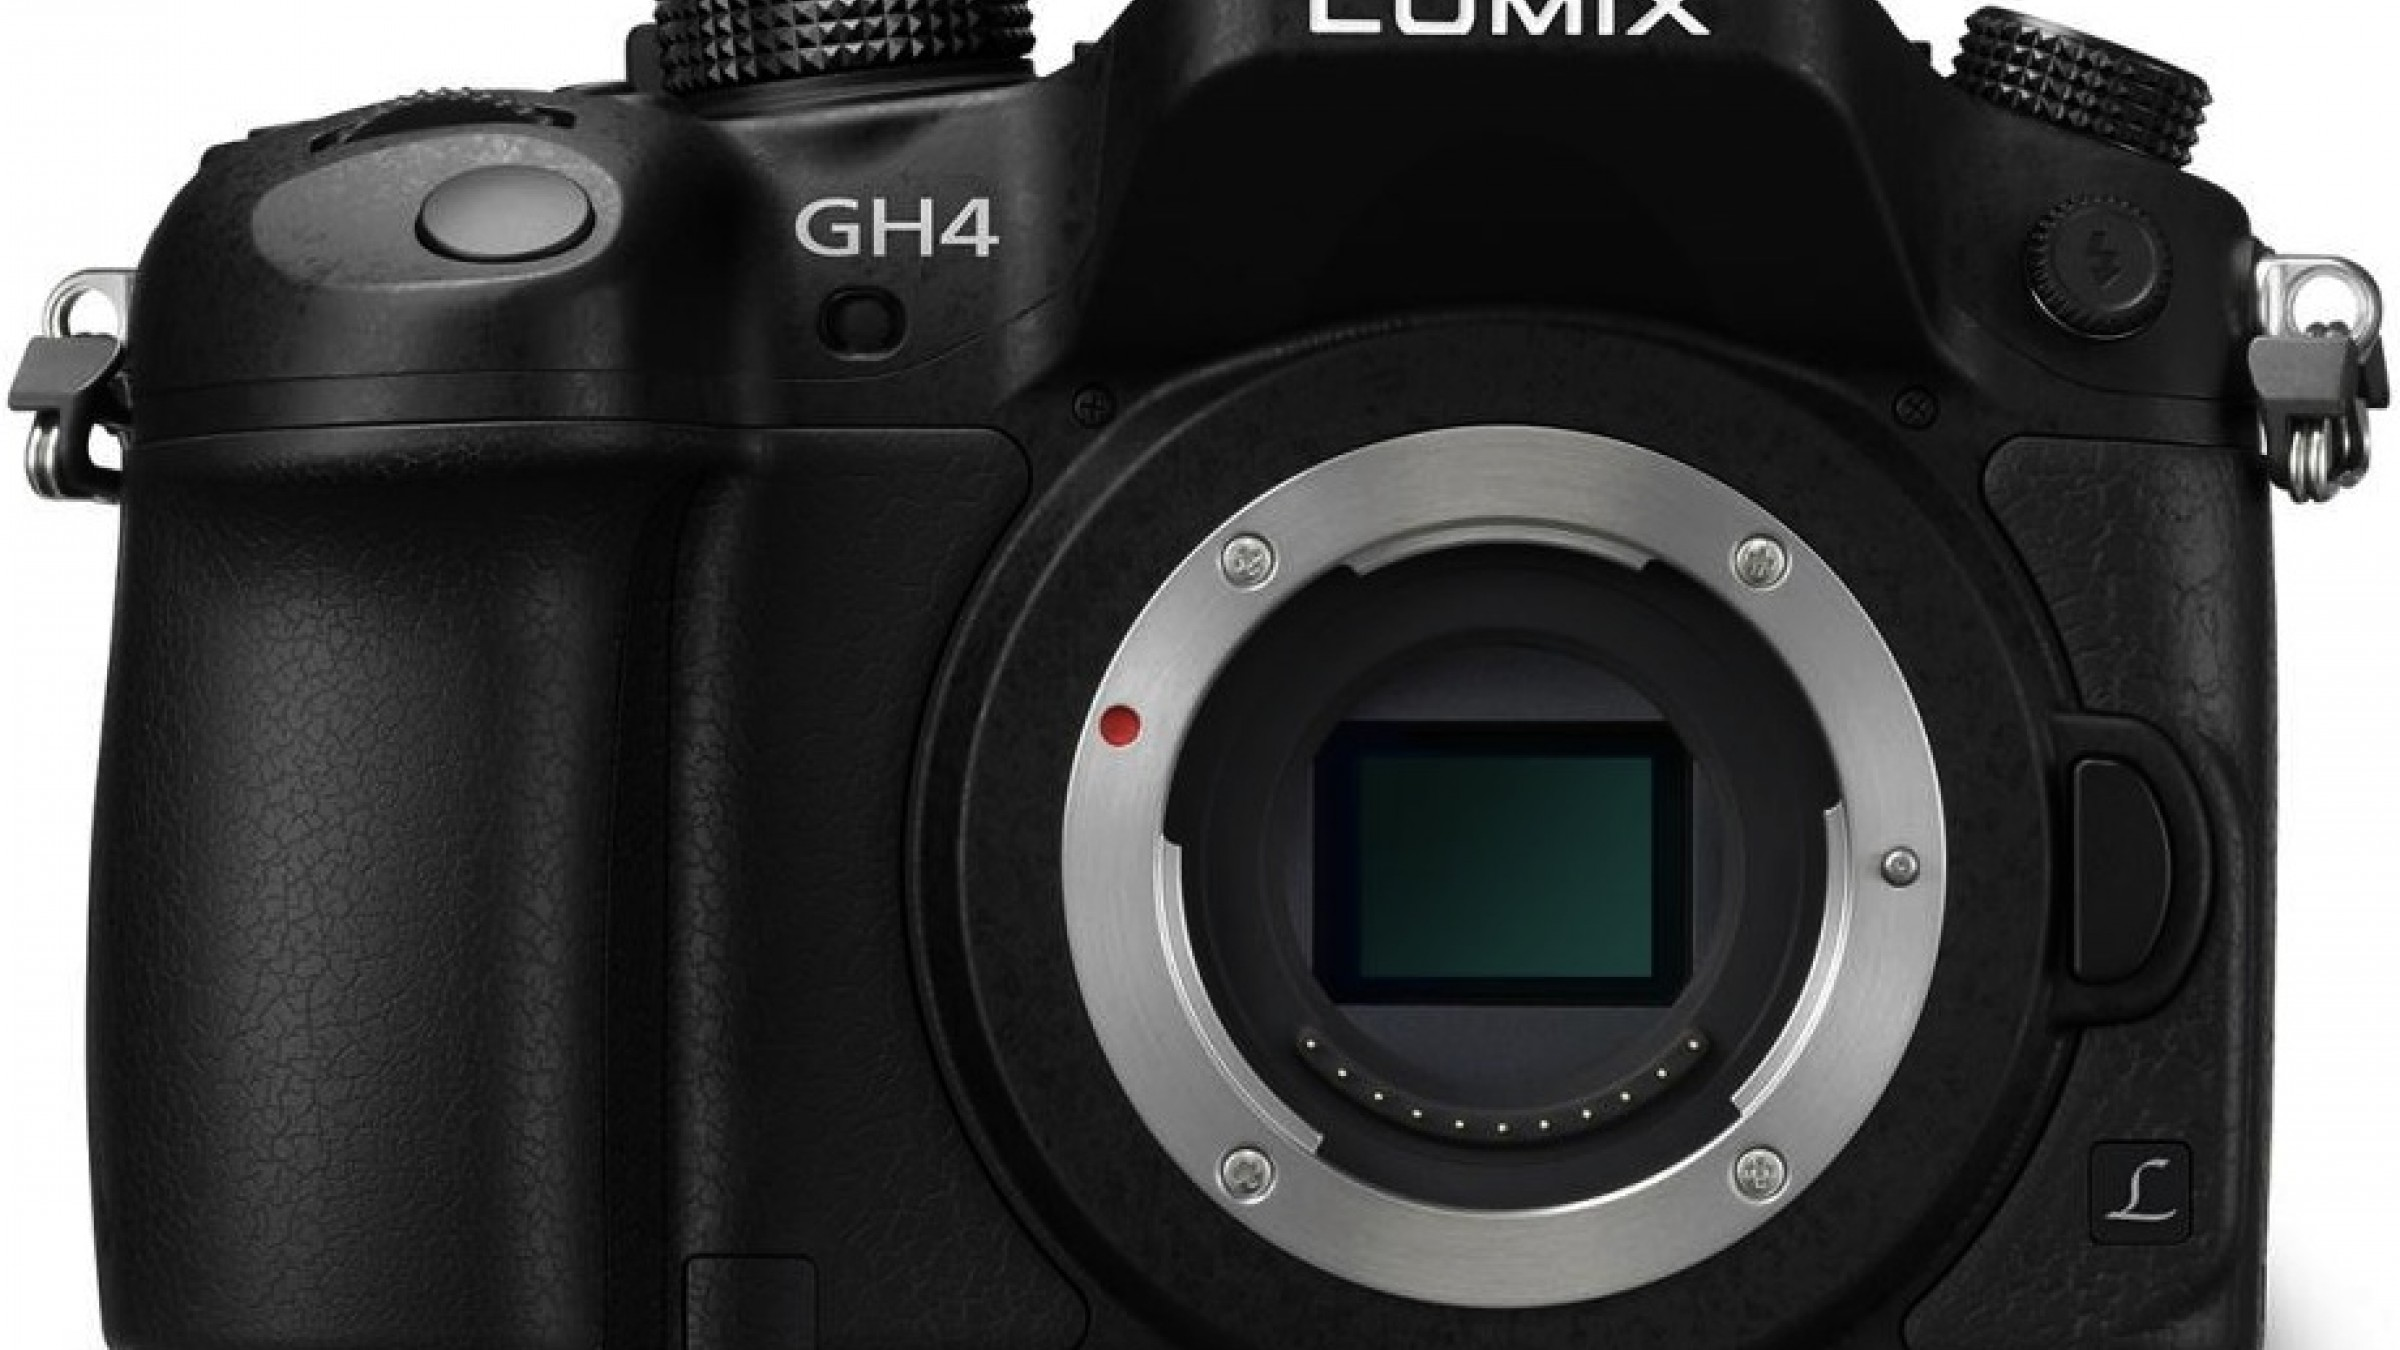 4K Panasonic GH4 Has Arrived: 4K Up to 24FPS, UHD Up to